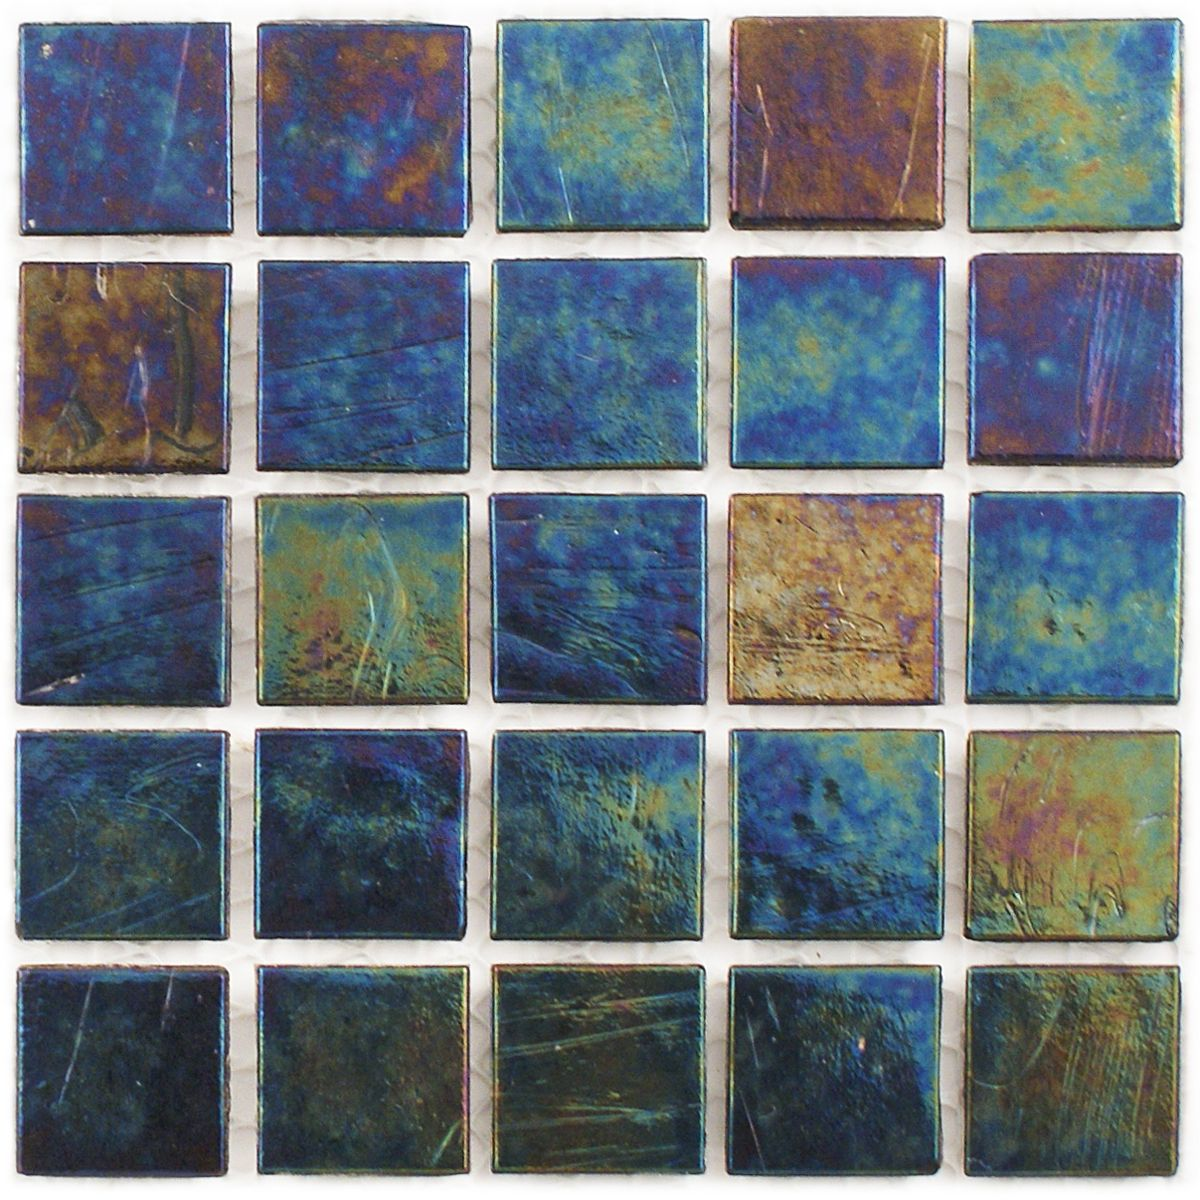 Tivoli - Indigo Blend 3/4x3/4-in Iridescent Glass Tile- $10.98 Per ...